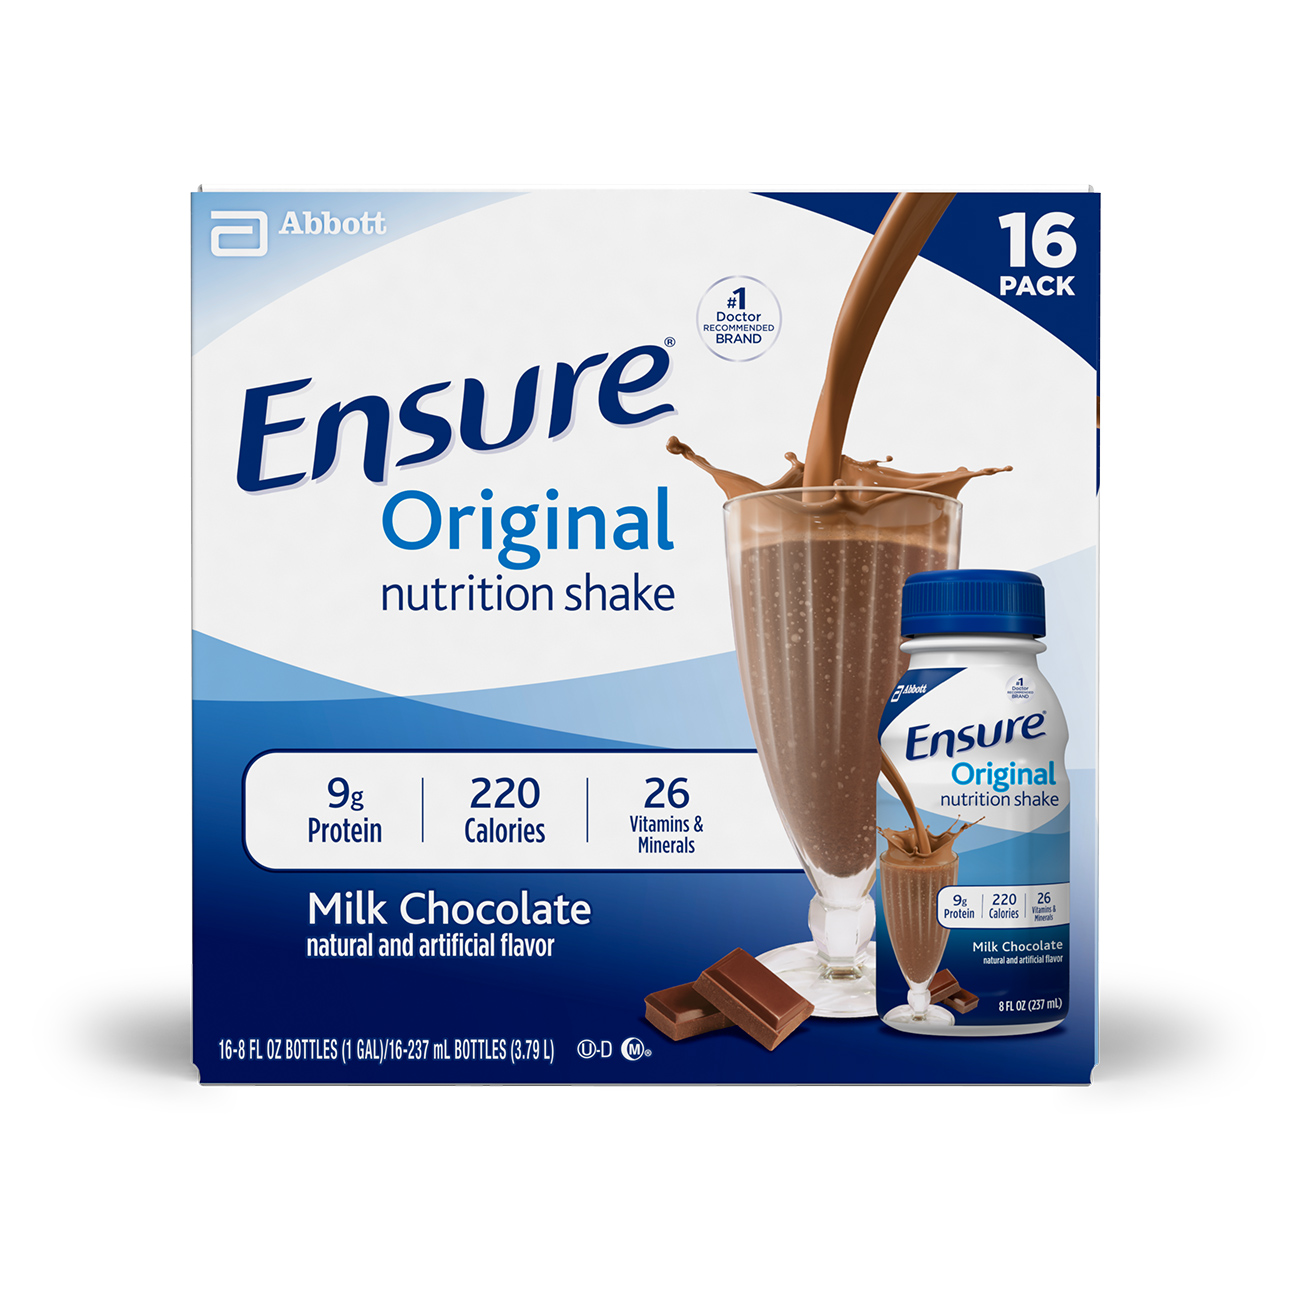 Ensure Original Nutrition Shake, Milk Chocolate, 8 fl oz (Pack of 16)